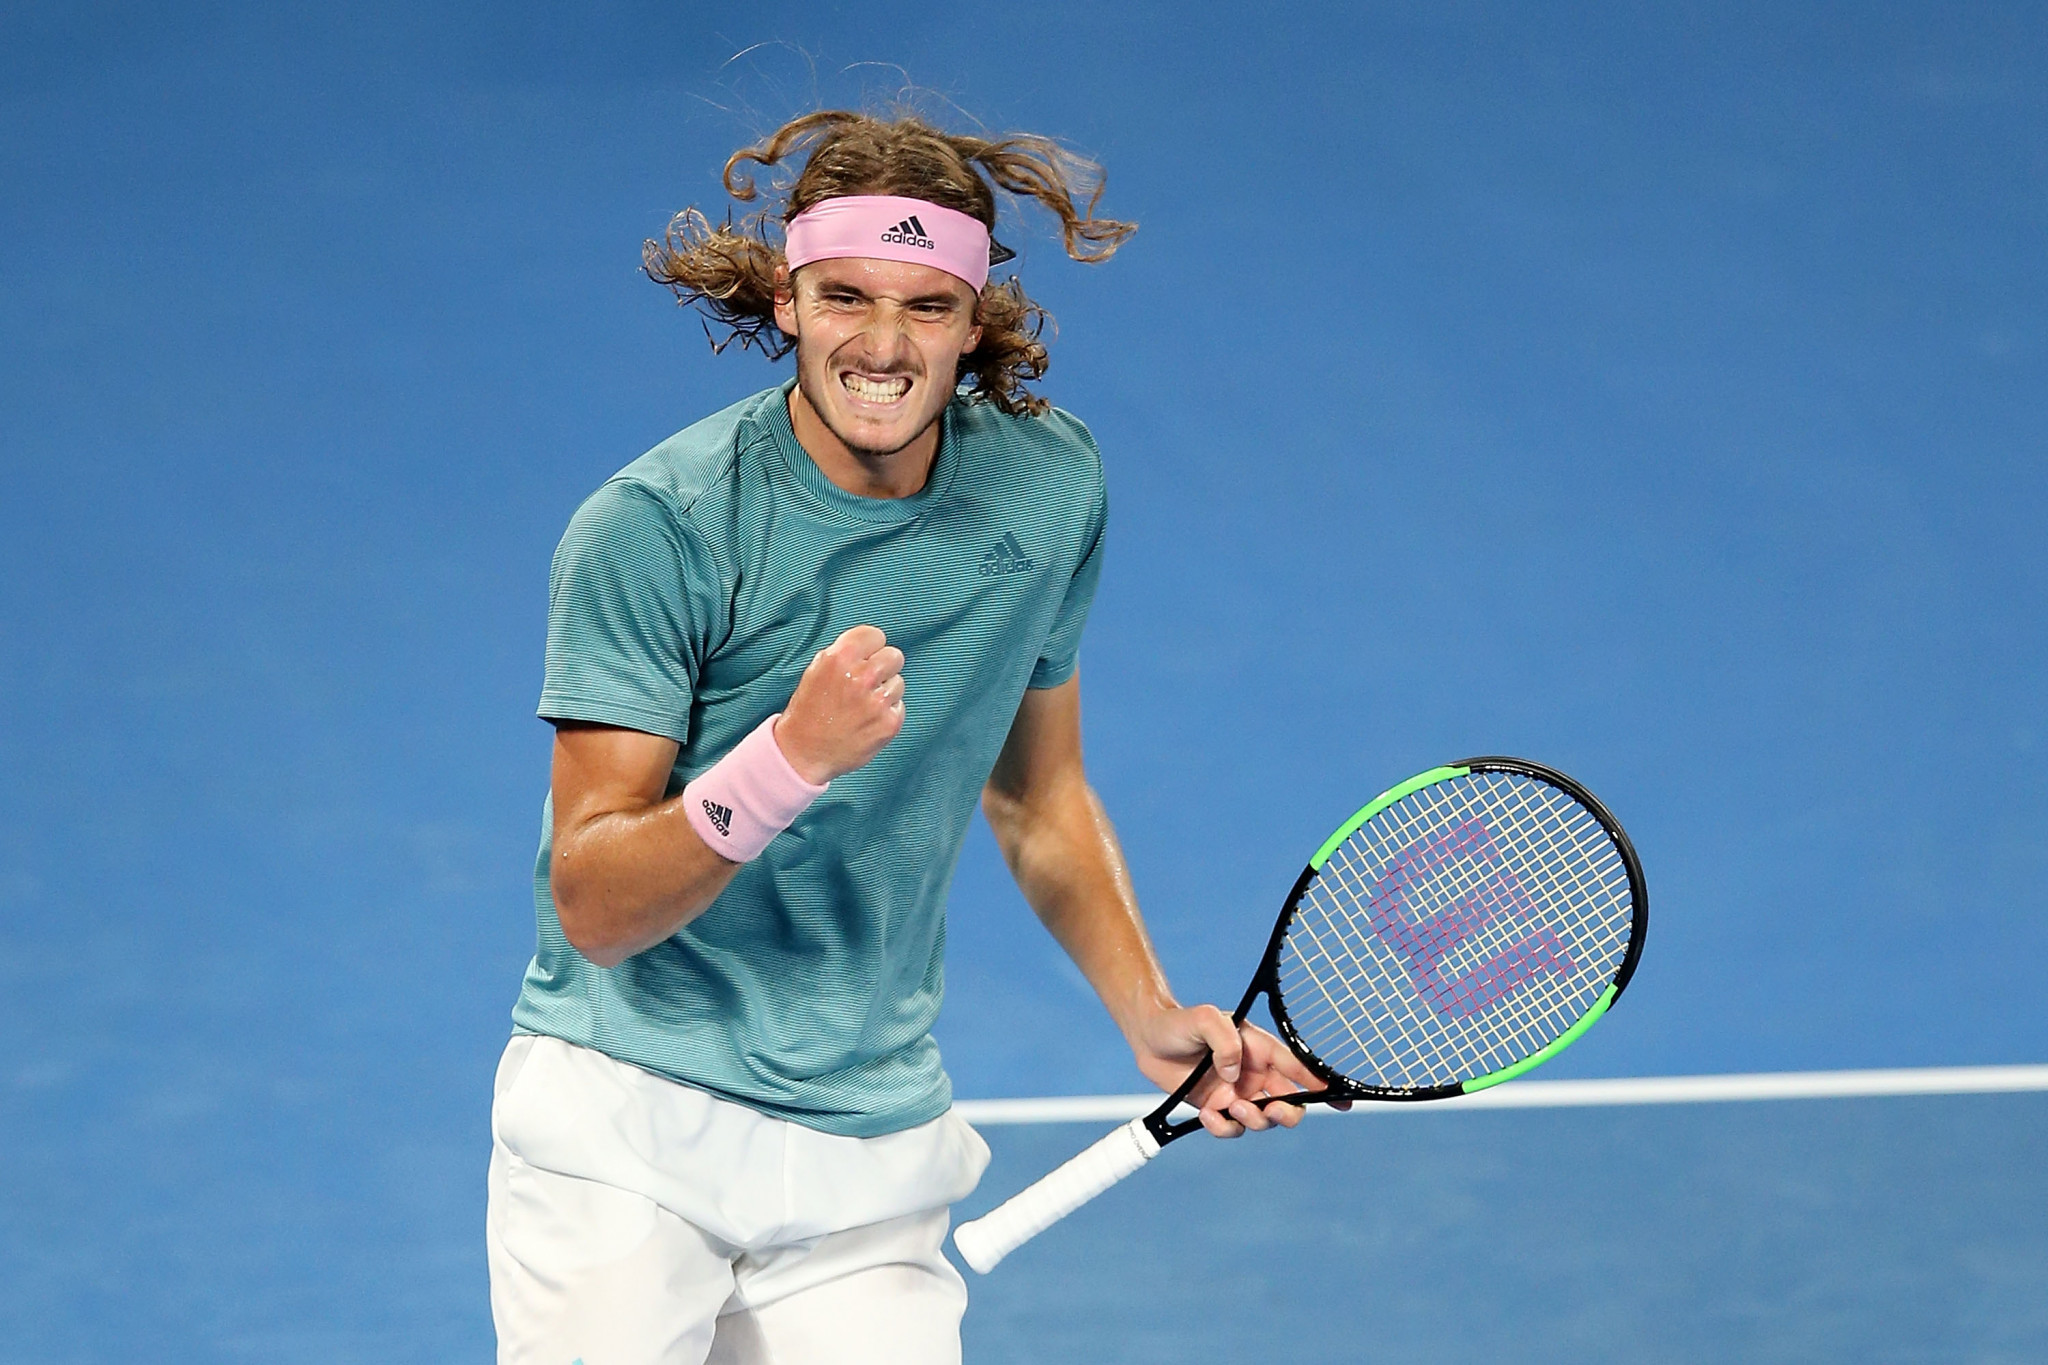 The Greek player earned a four set win over Roger Federer to reach the last eight ©Getty Images